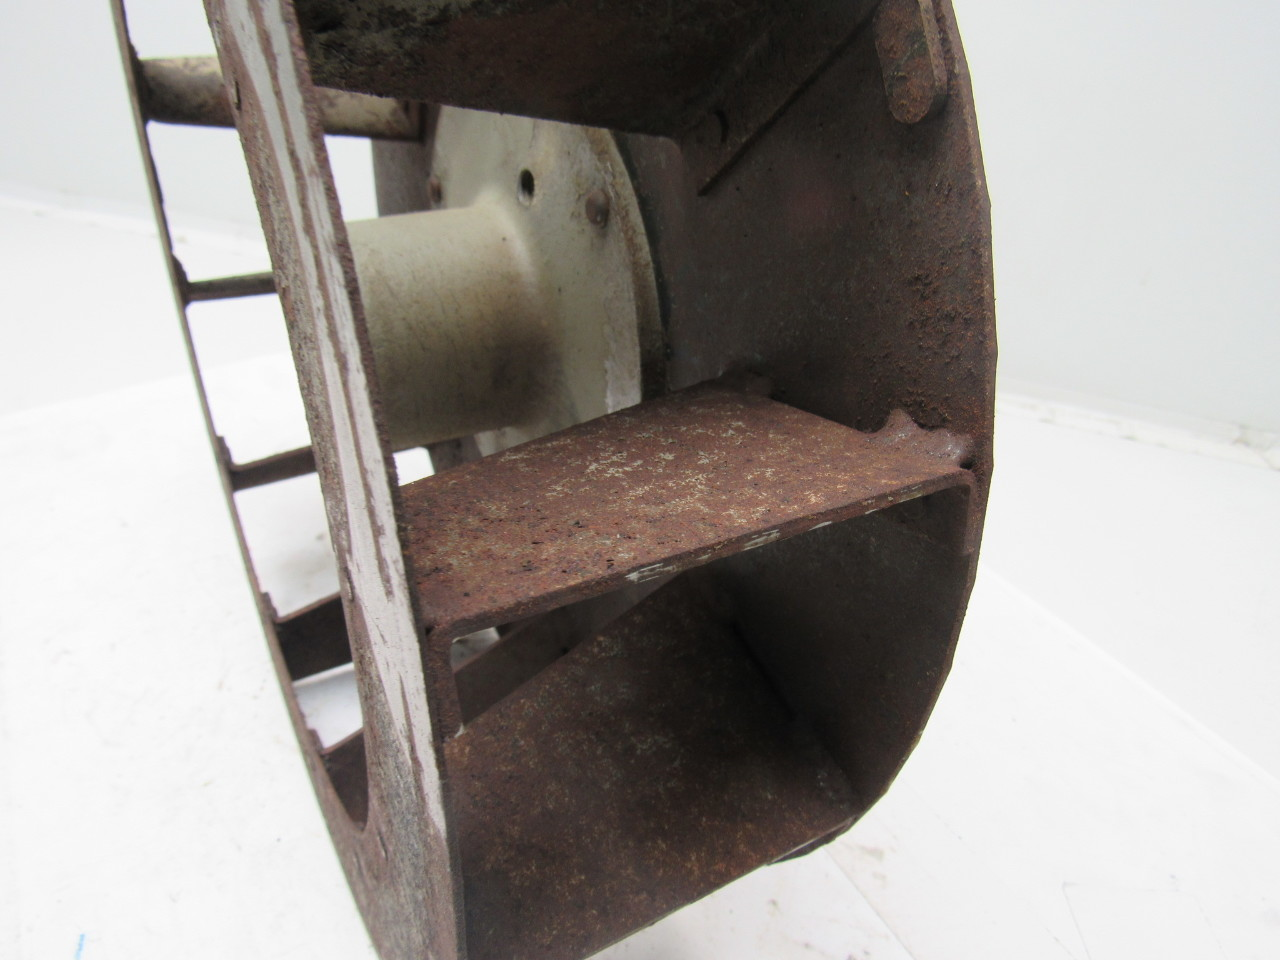 Torit 13 1 2 x 3 1 2 dust collector blower fan for Dust collector motor blower